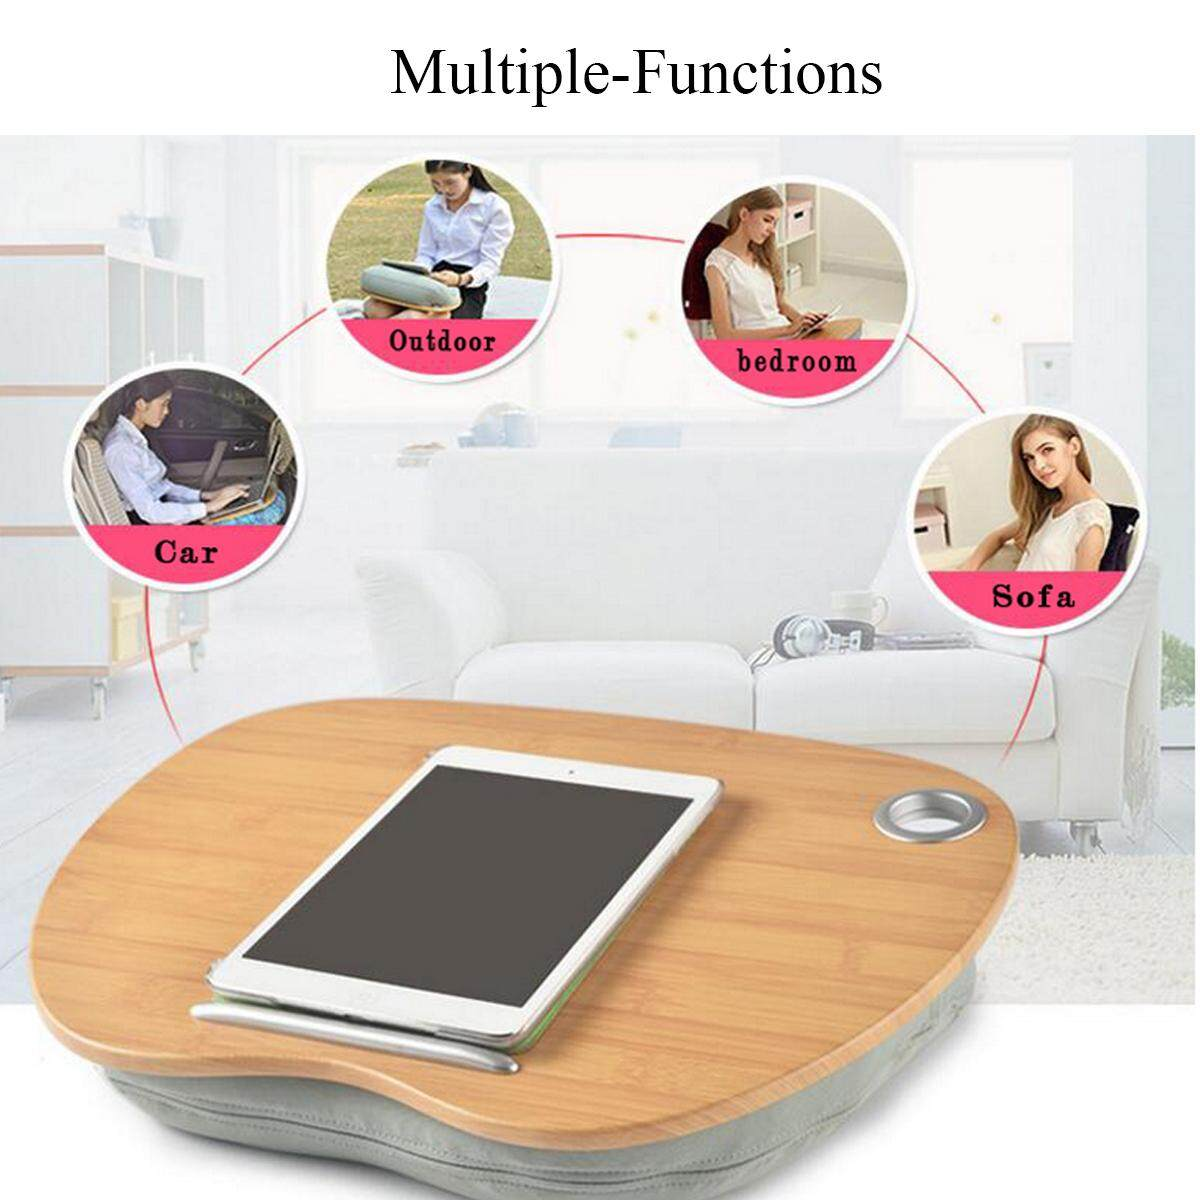 Multifunctional Lap Laptop Pillow Desk Tablet Notebook Table Stand Bed Sofa Tray Grey - 2